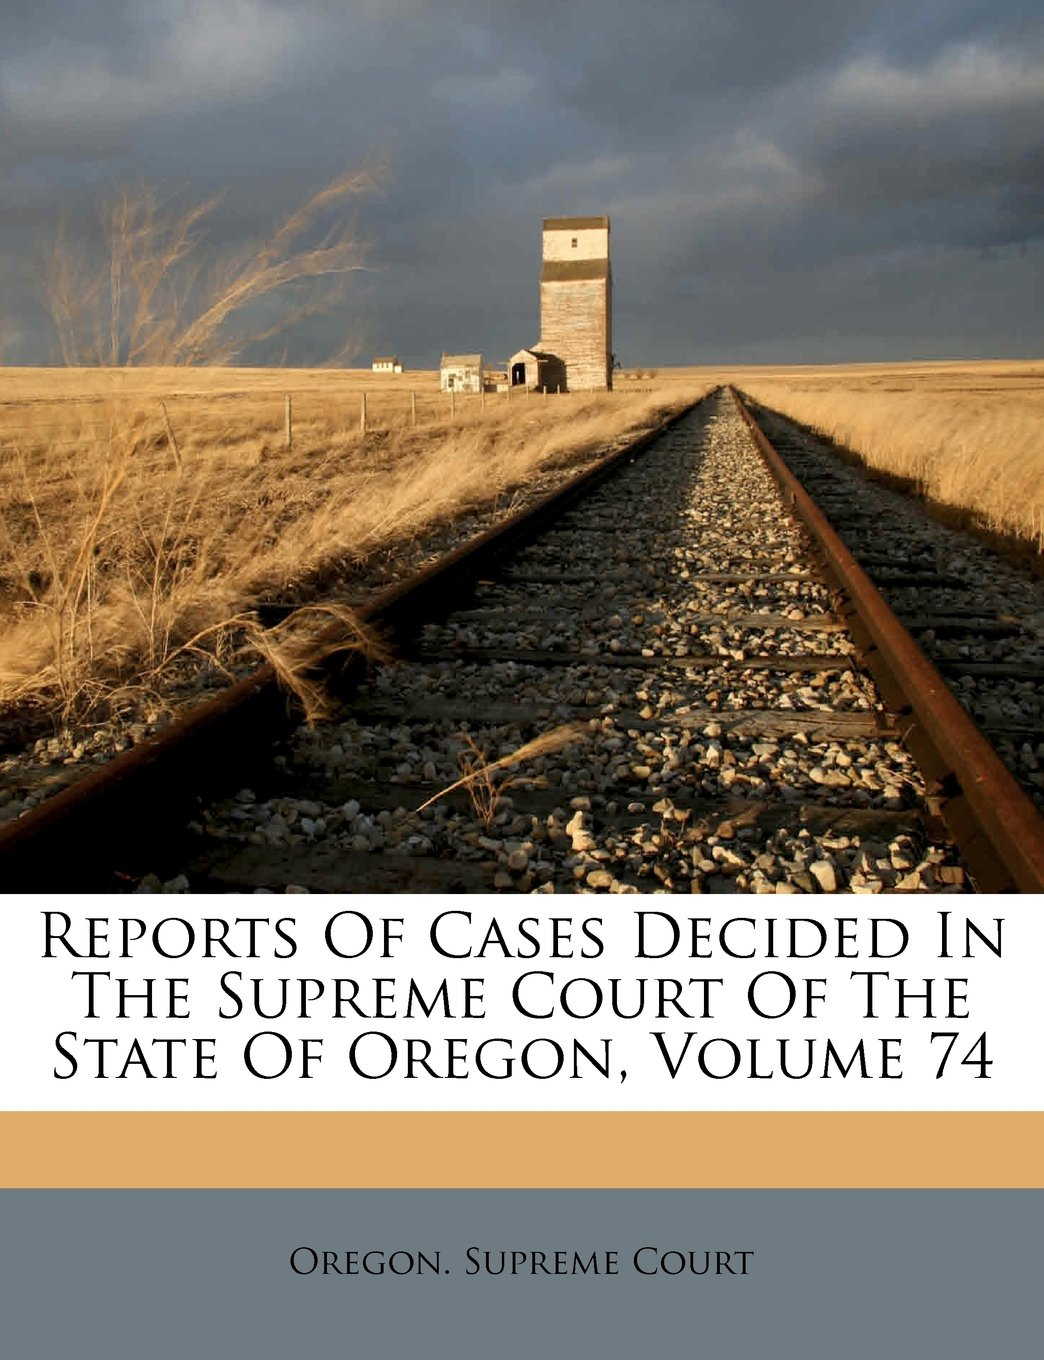 Download Reports Of Cases Decided In The Supreme Court Of The State Of Oregon, Volume 74 PDF